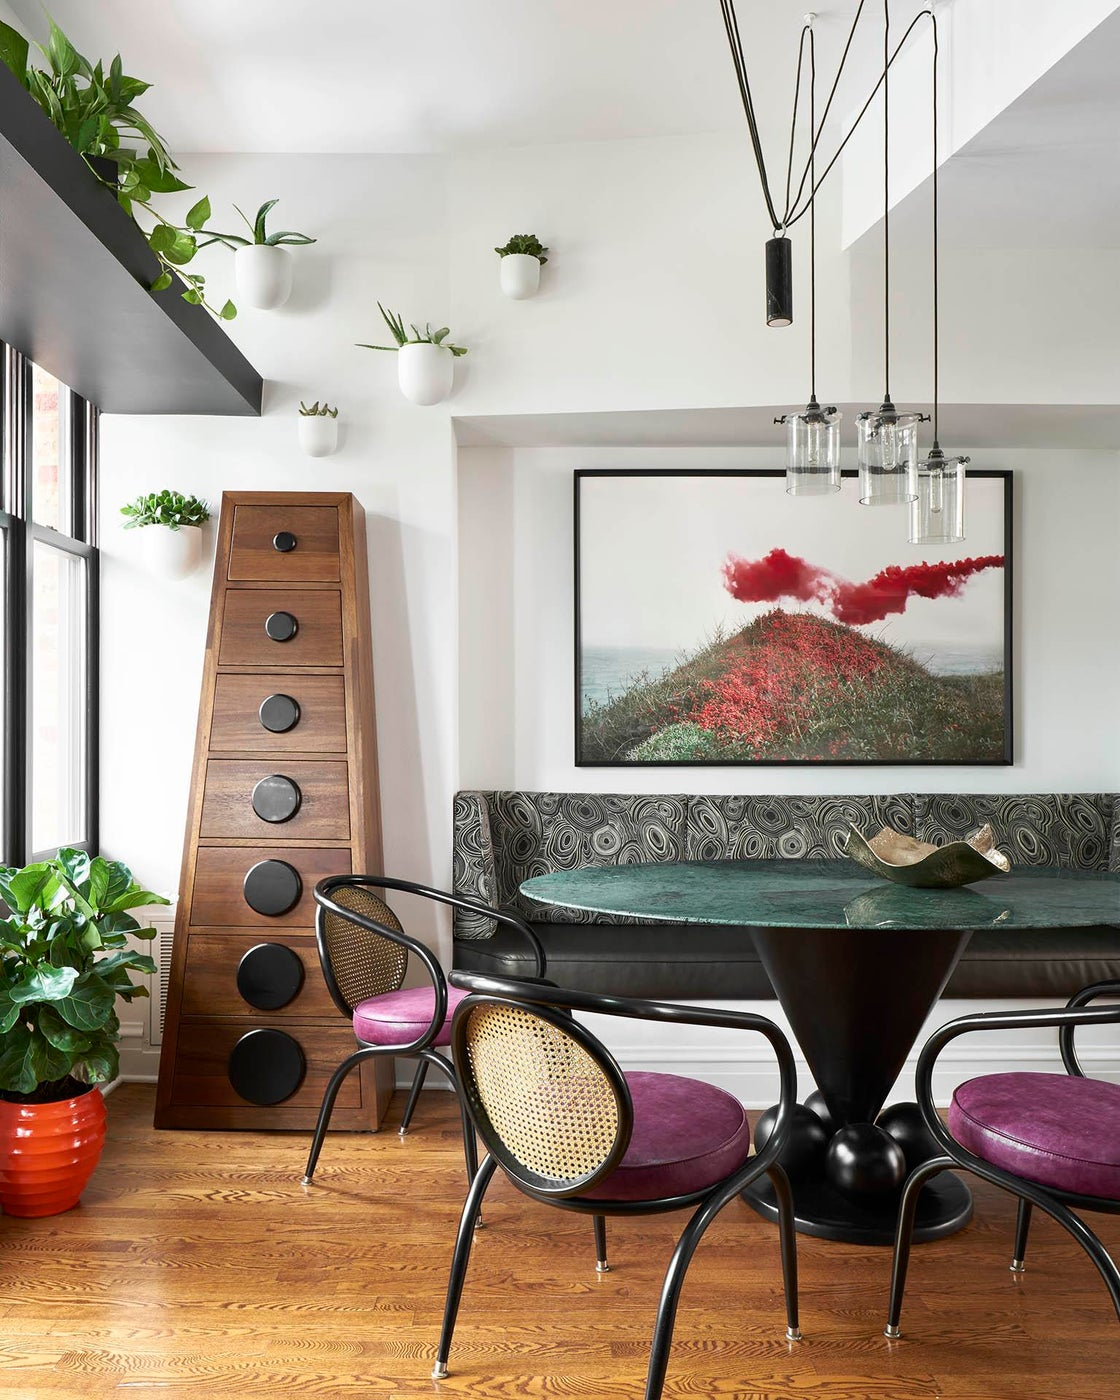 Chicago Cottage by Studio Sven, breakfast room with banquette